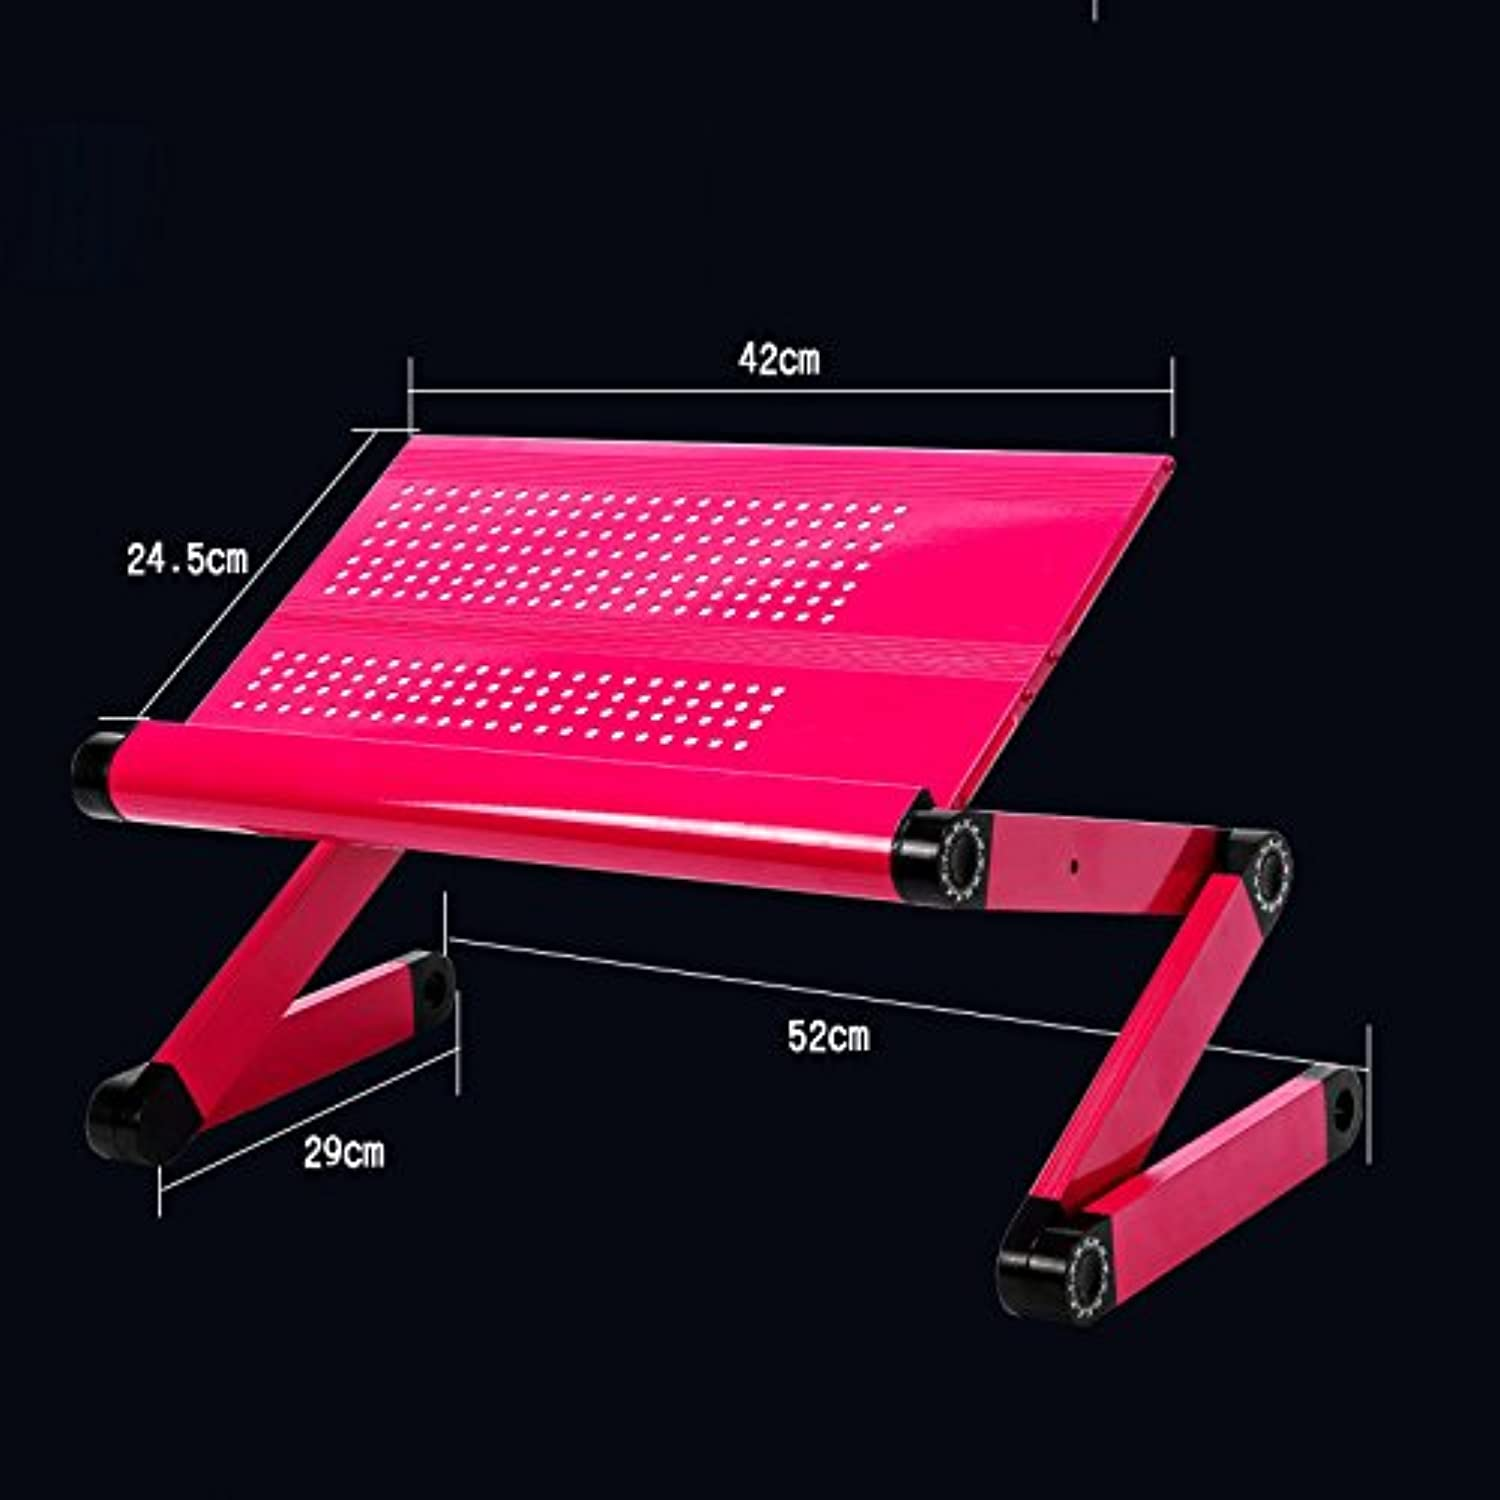 Qiaoba- The Couch fold Desk Aluminum Alloy Notebook Lapdesk B